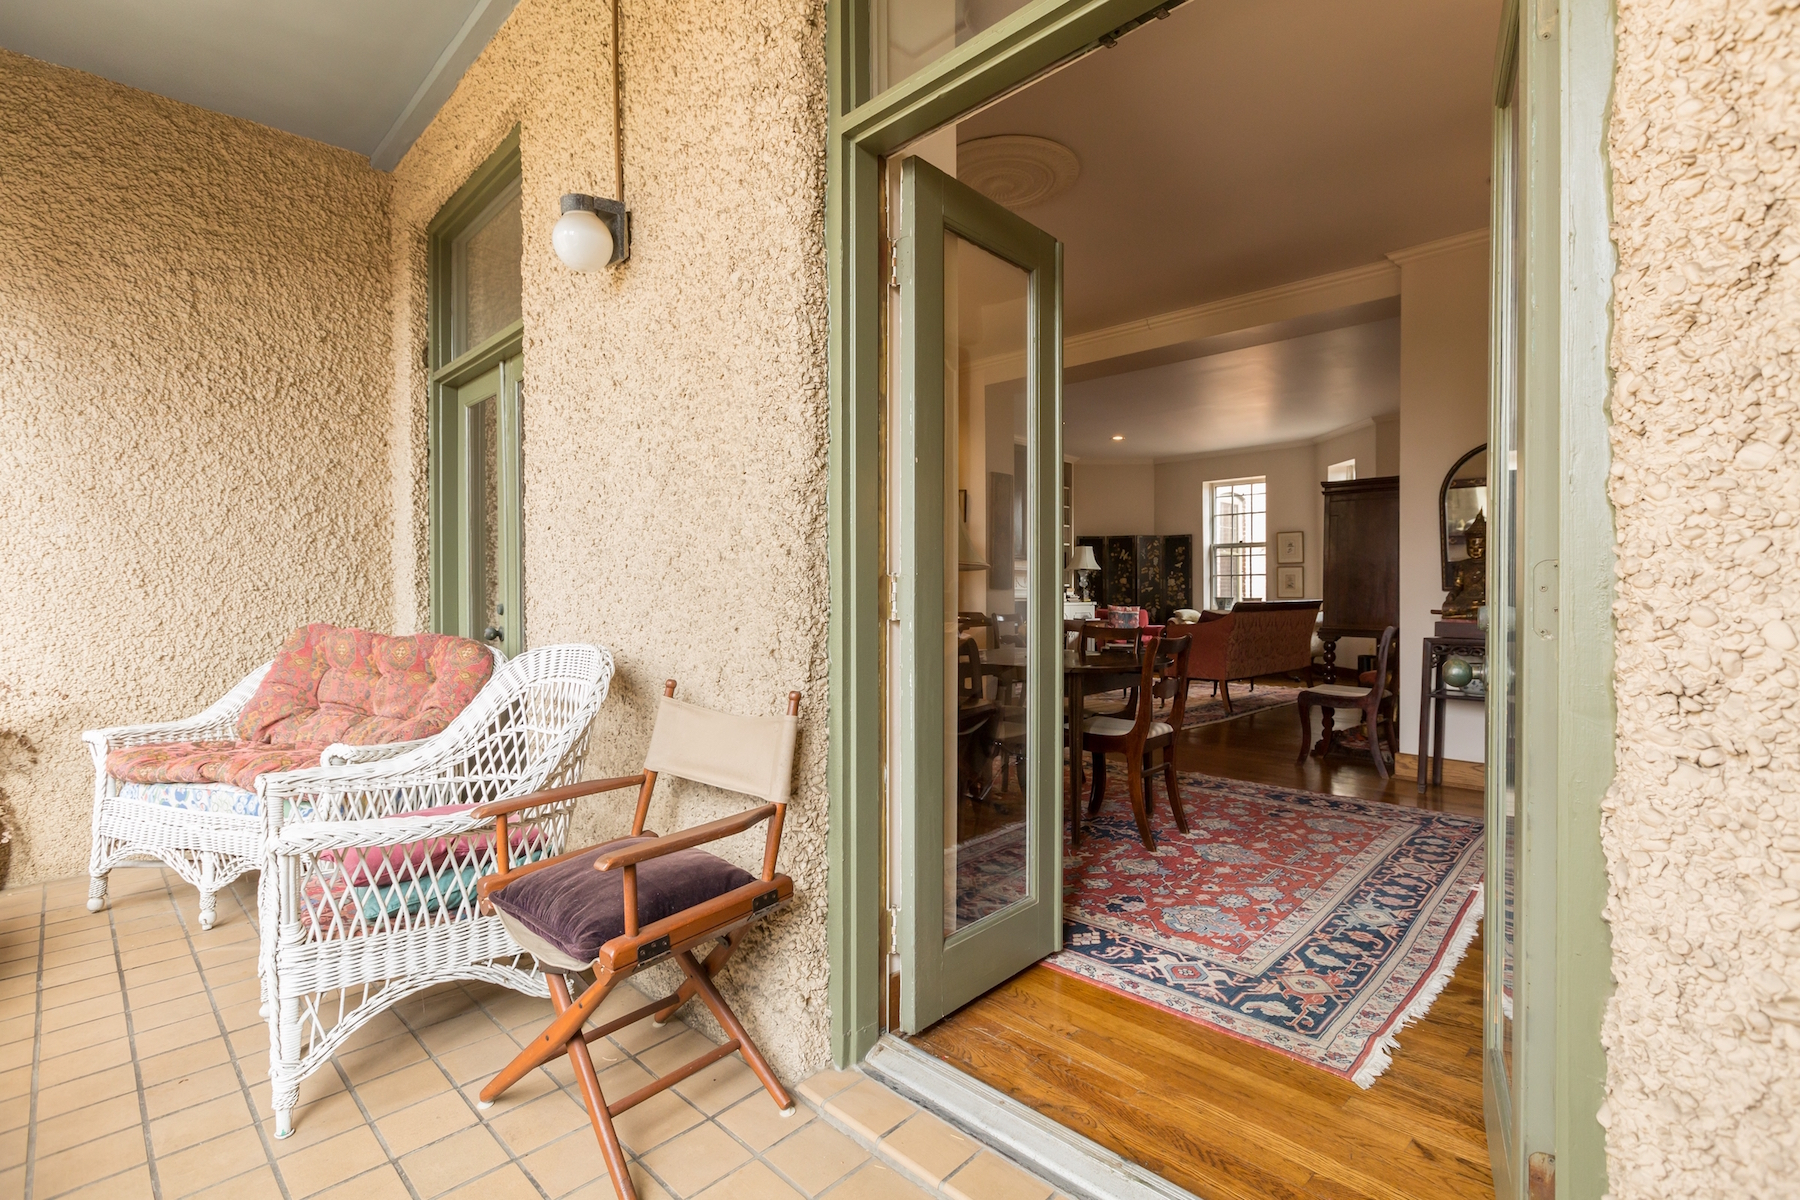 Additional photo for property listing at Rarely Available: Historic Georgetown Condominium 1527 30th Street Nw B21 Washington, Distretto Di Columbia 20007 Stati Uniti